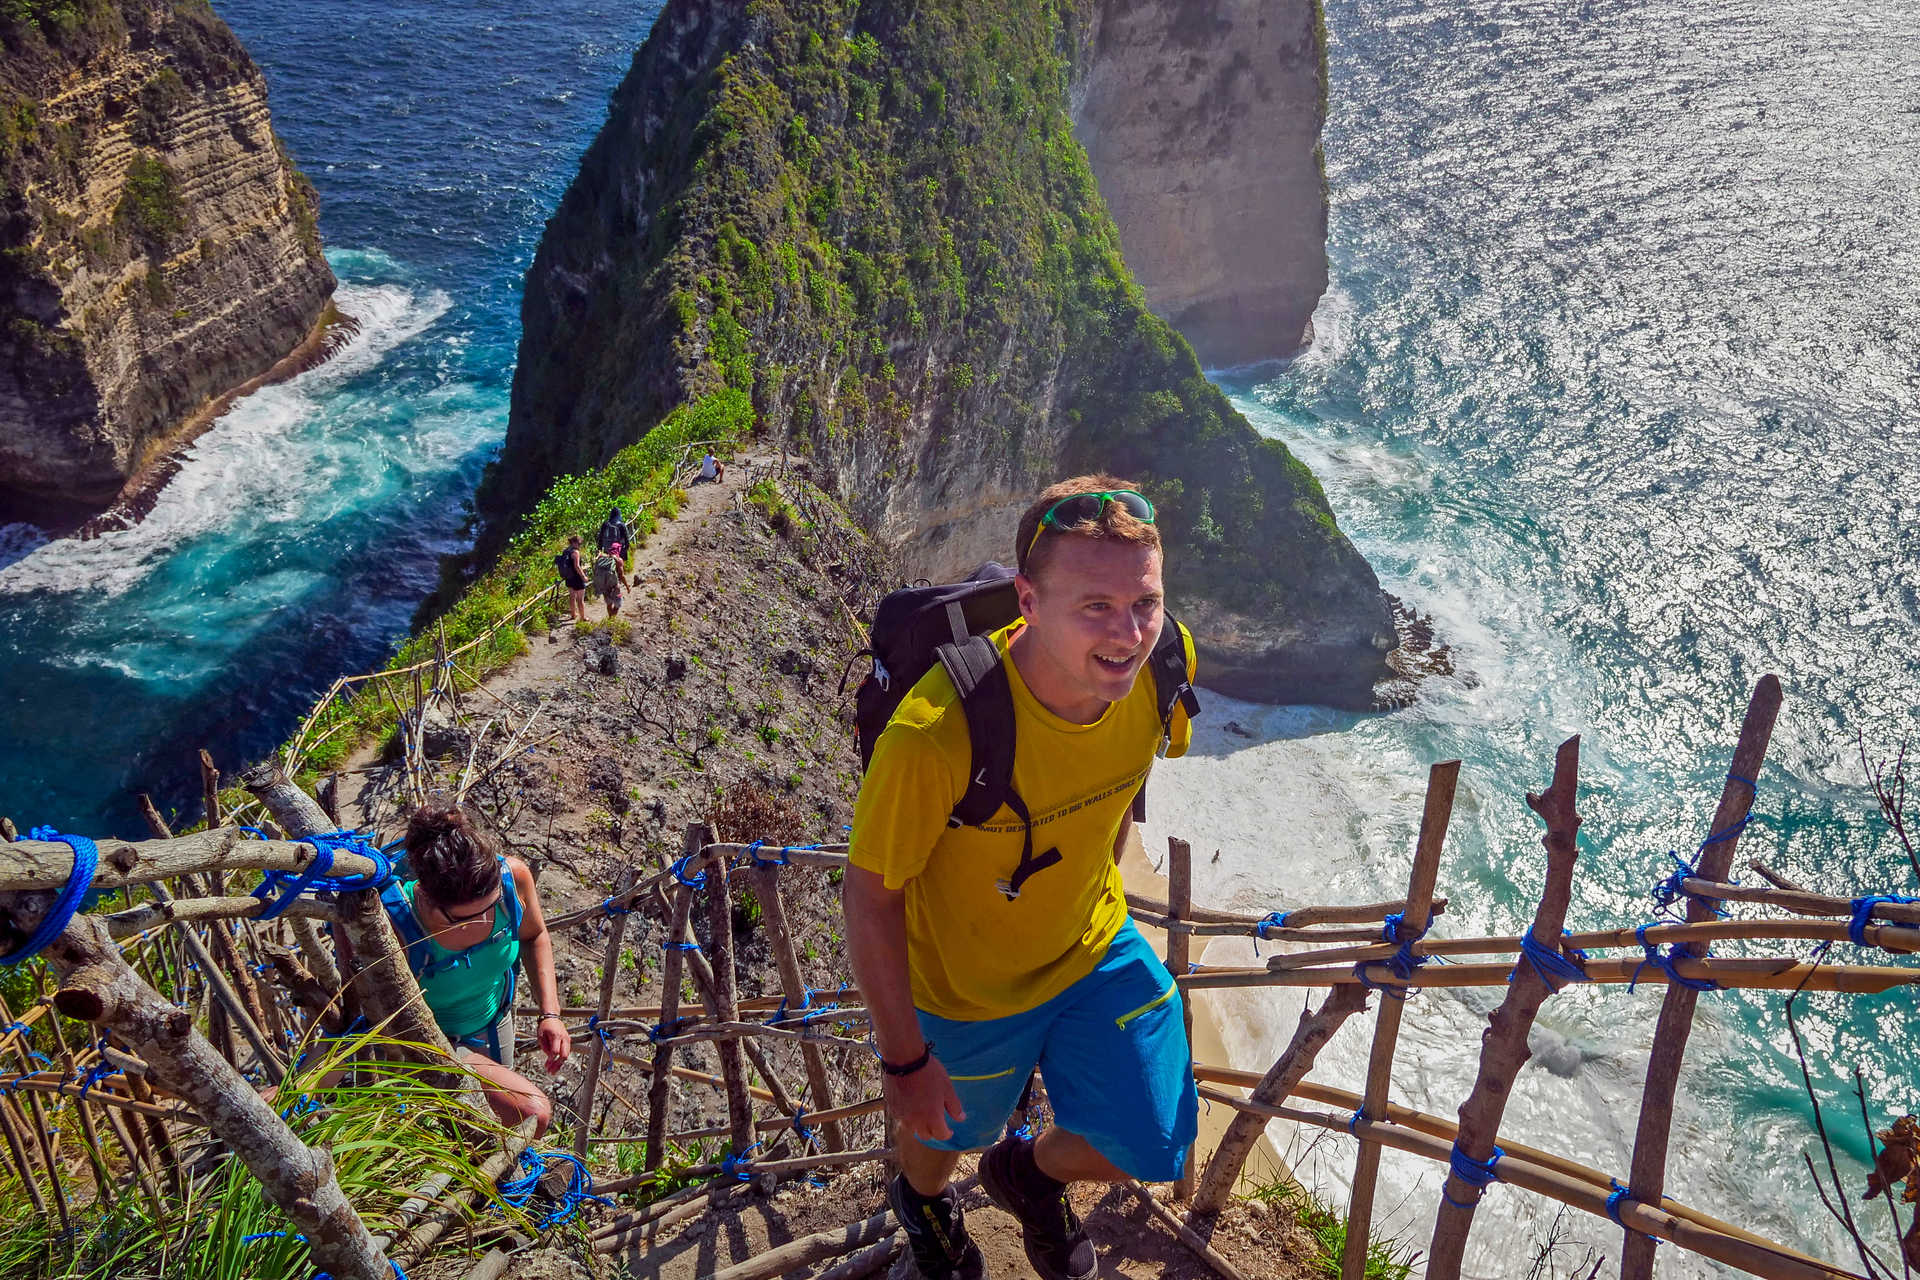 Hikers in Nusa Penida Indonesia